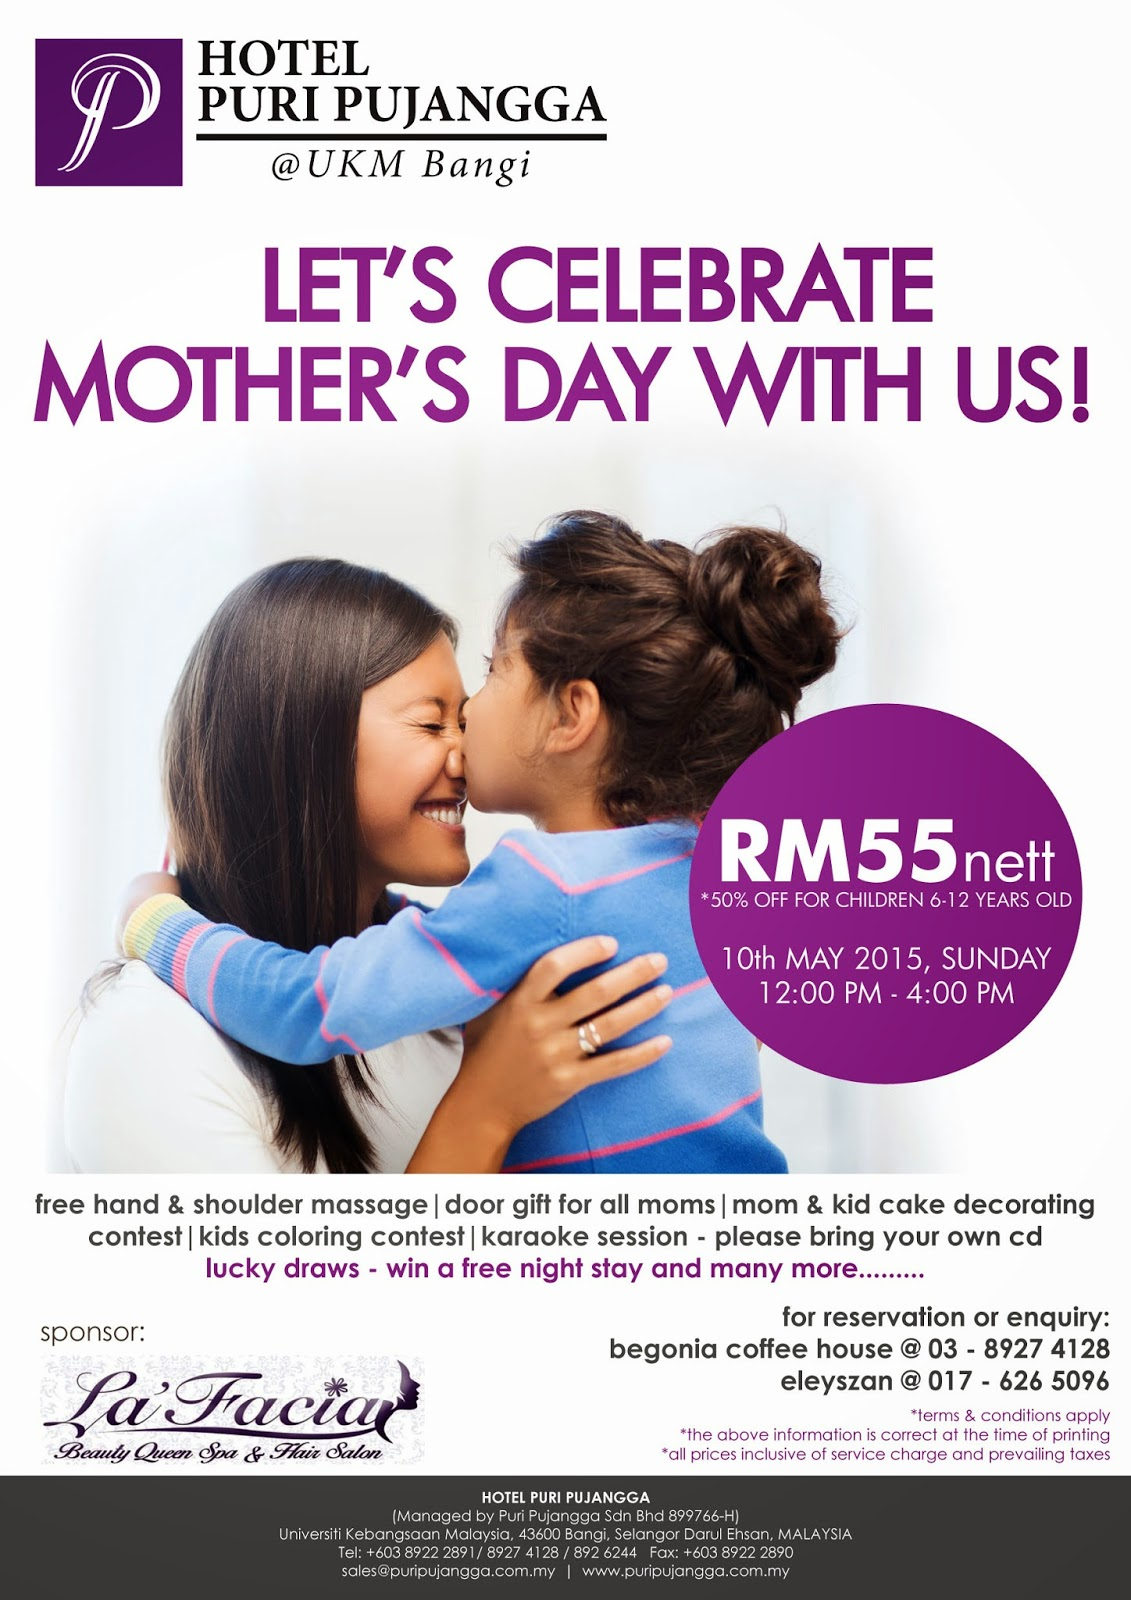 Mother's Day, Hotel Puri Pujangga, Offer, Hi-Tea, UKM, byrawlins, makan, murah